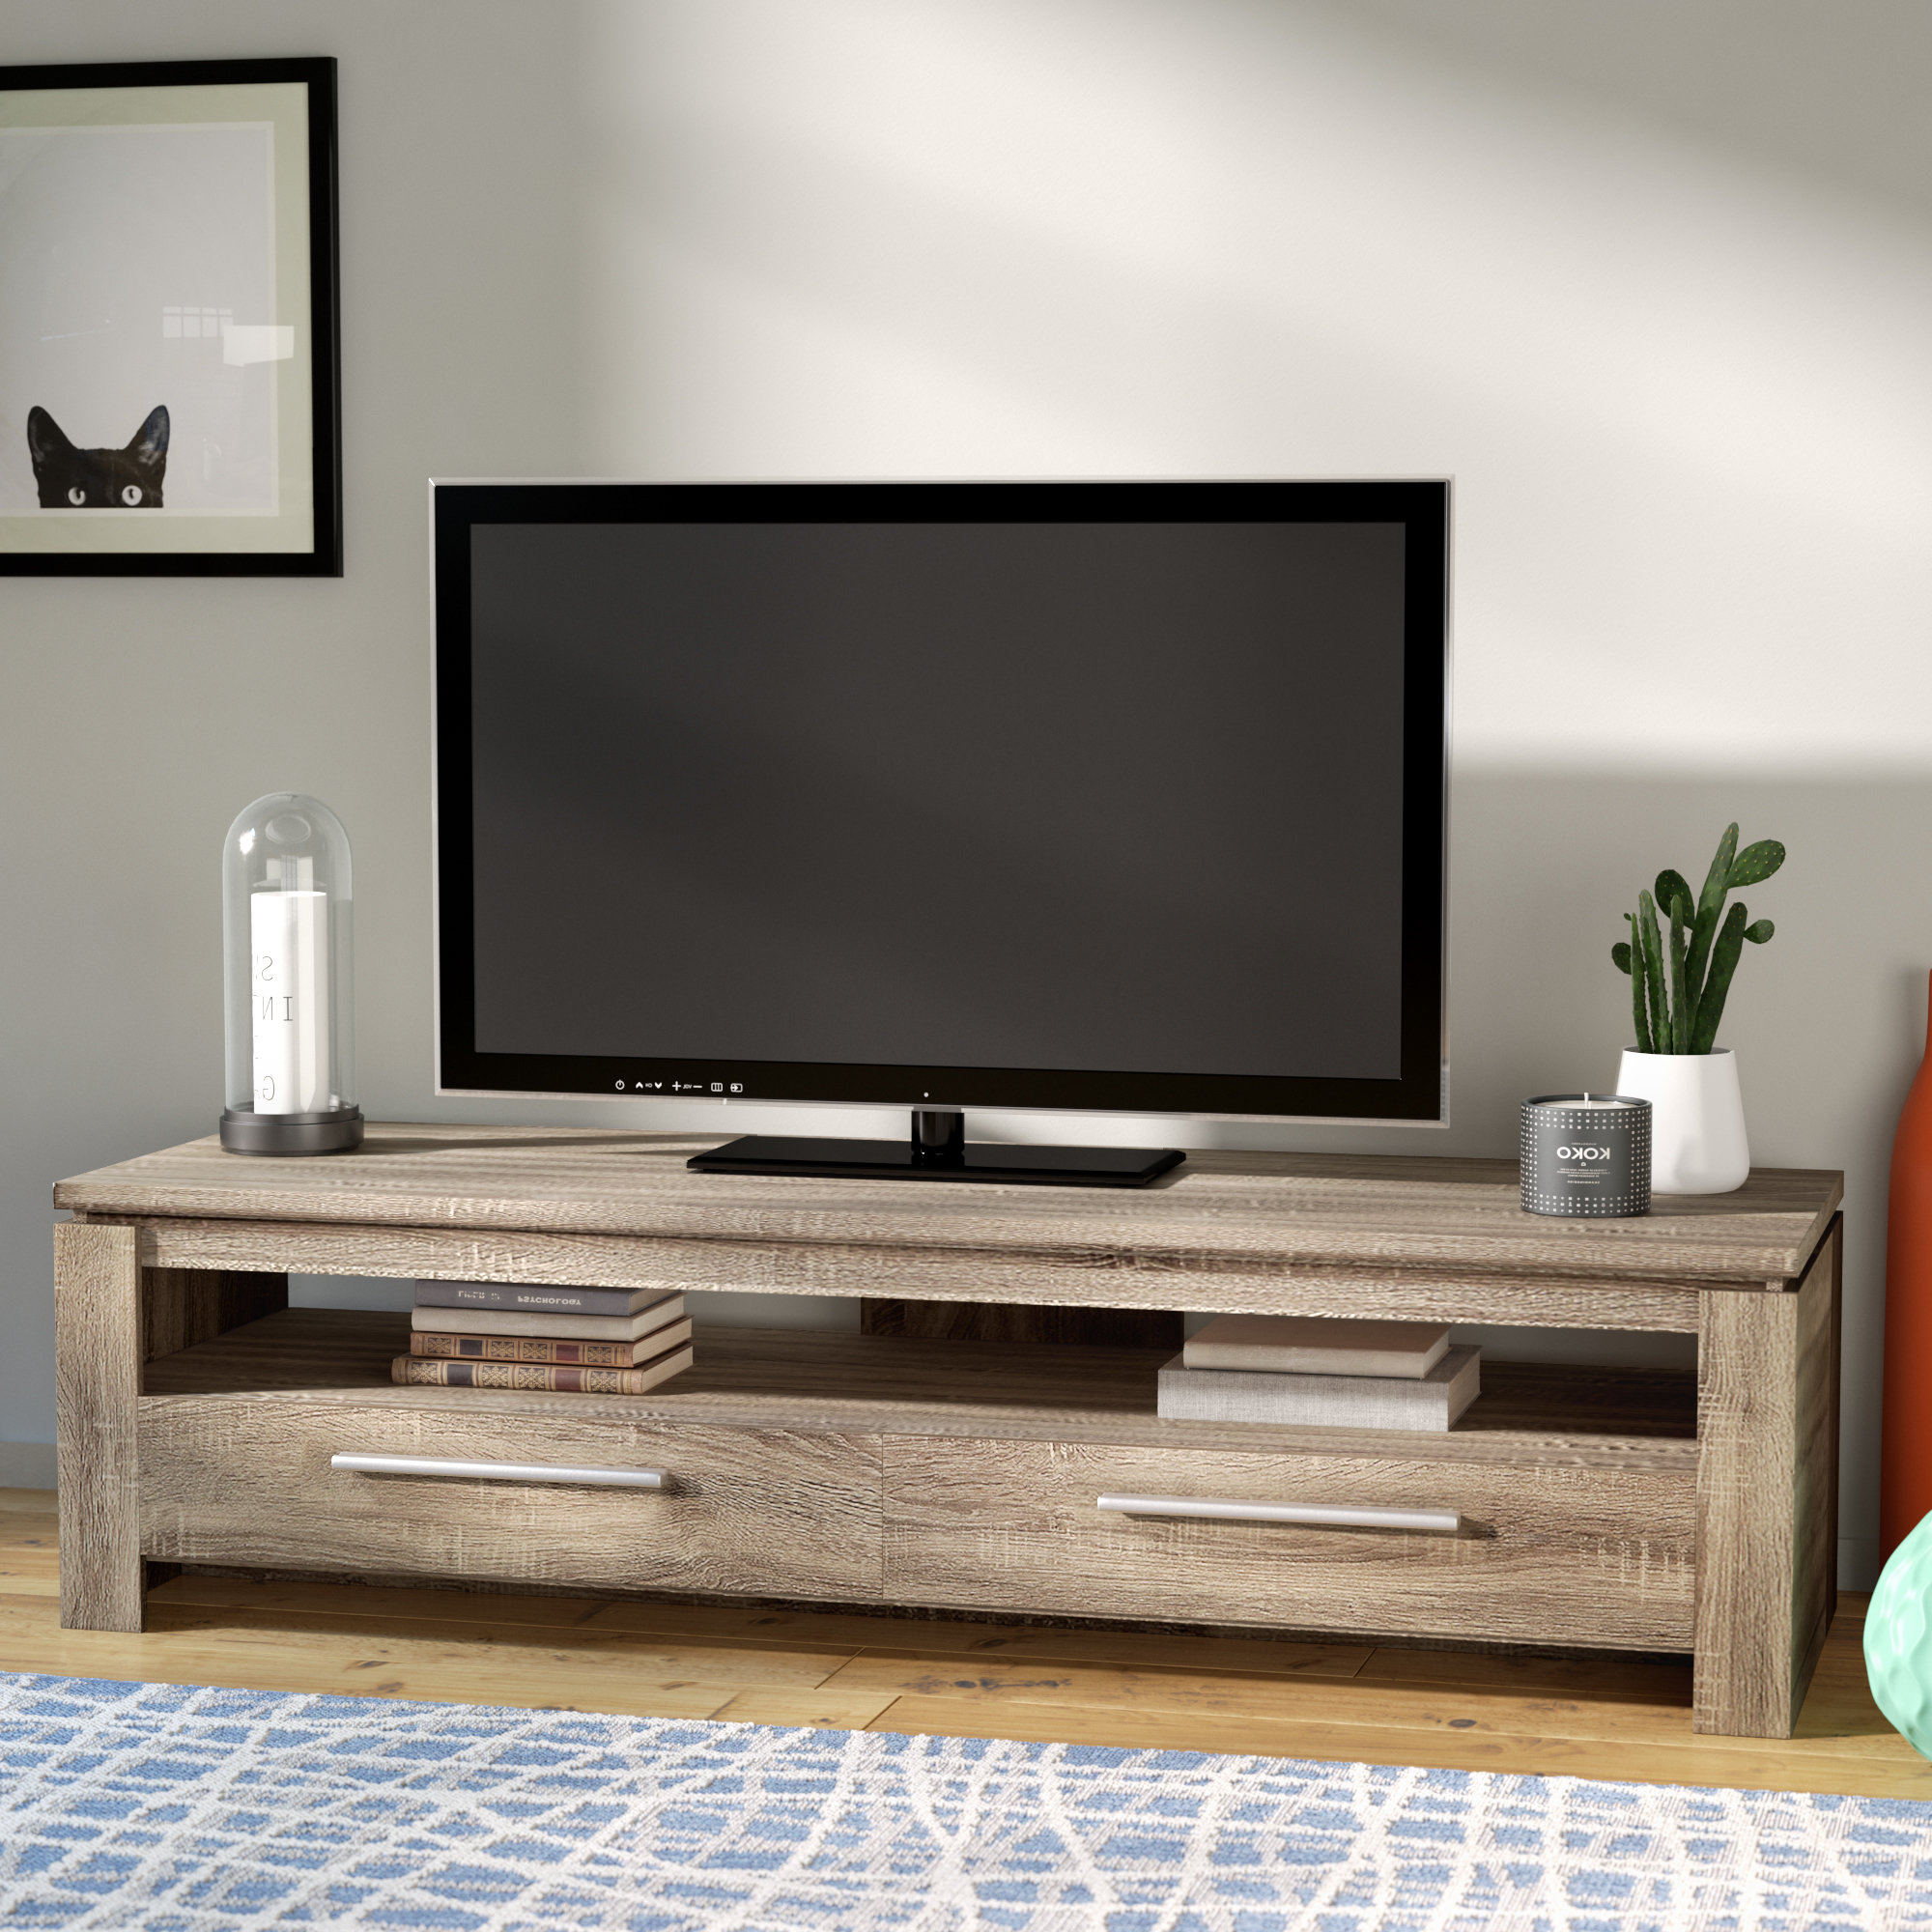 Popular 12 Inch Deep Tv Stand Mercury Row Rorie For Tvs Up To 46 Wayfair Throughout Sinclair Blue 64 Inch Tv Stands (View 16 of 20)